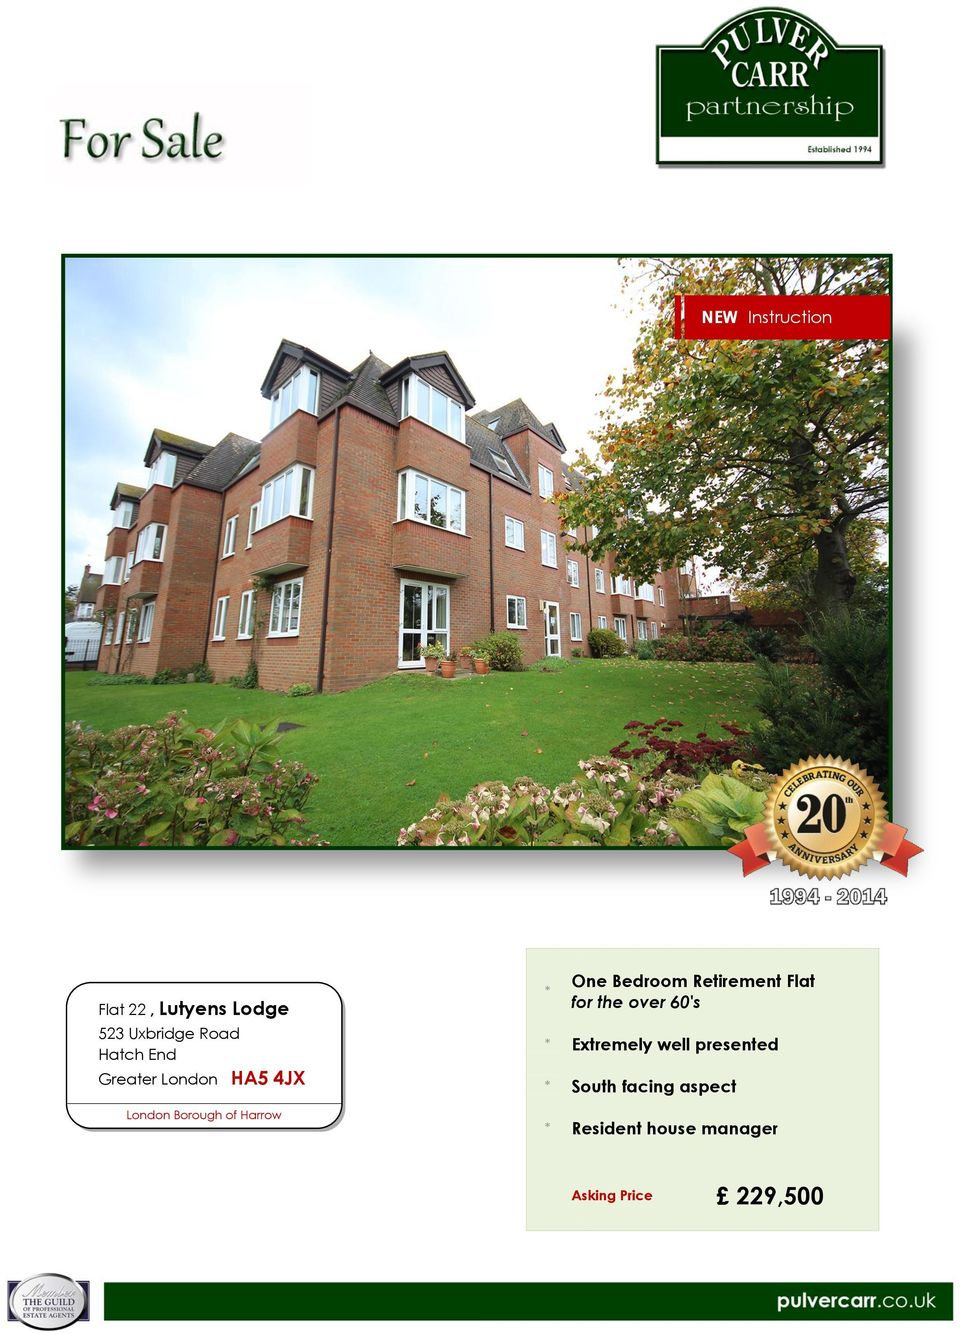 Borough of Harrow * One Bedroom Retirement Flat for the over 60's * Extremely